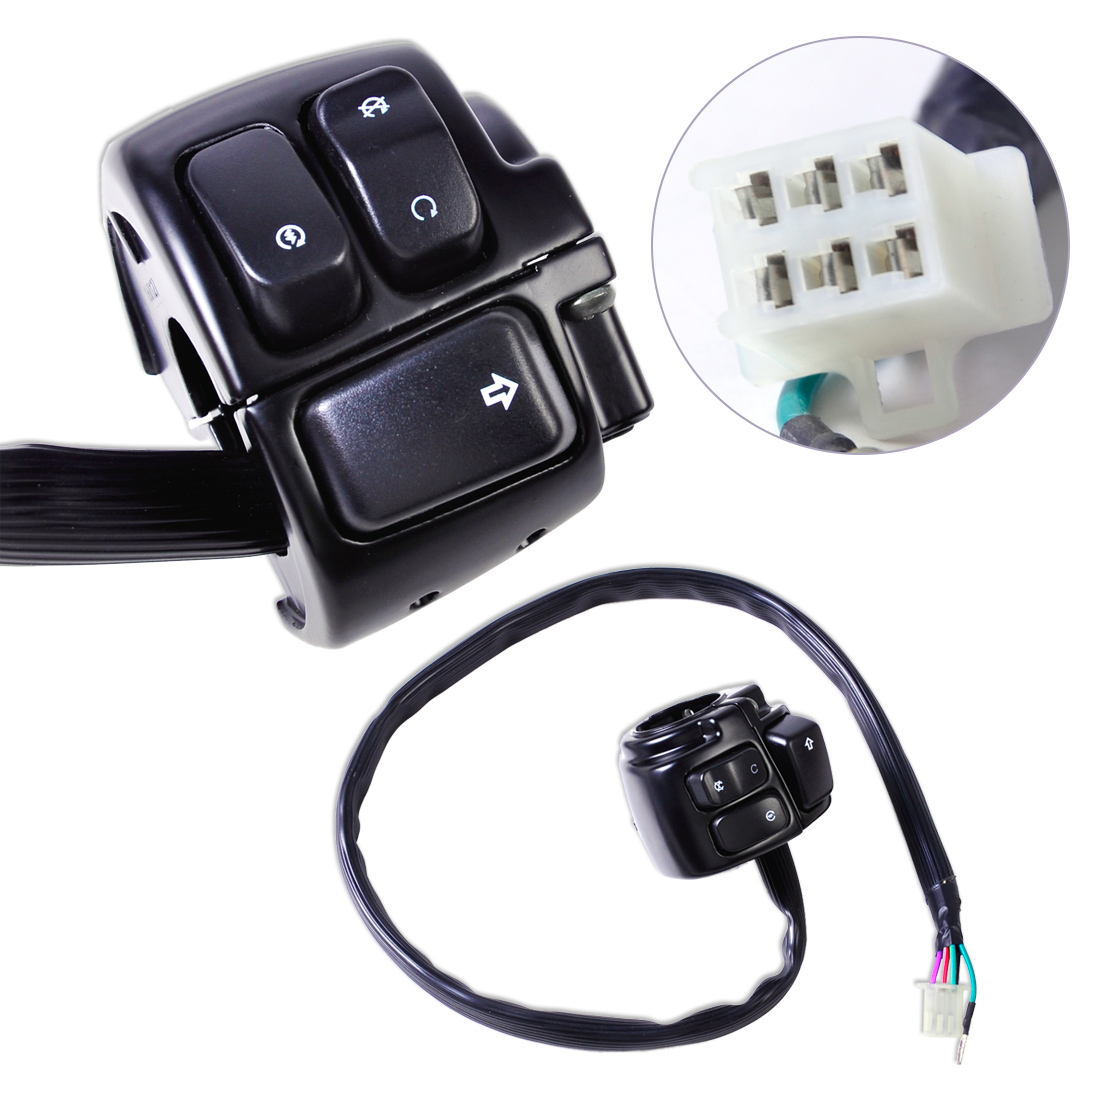 small resolution of dwcx new motorcycle 1 handlebar ignition kill switch wiring harness for harley davidson softail dyna sportster 1200 883 v rod in motorcycle switches from